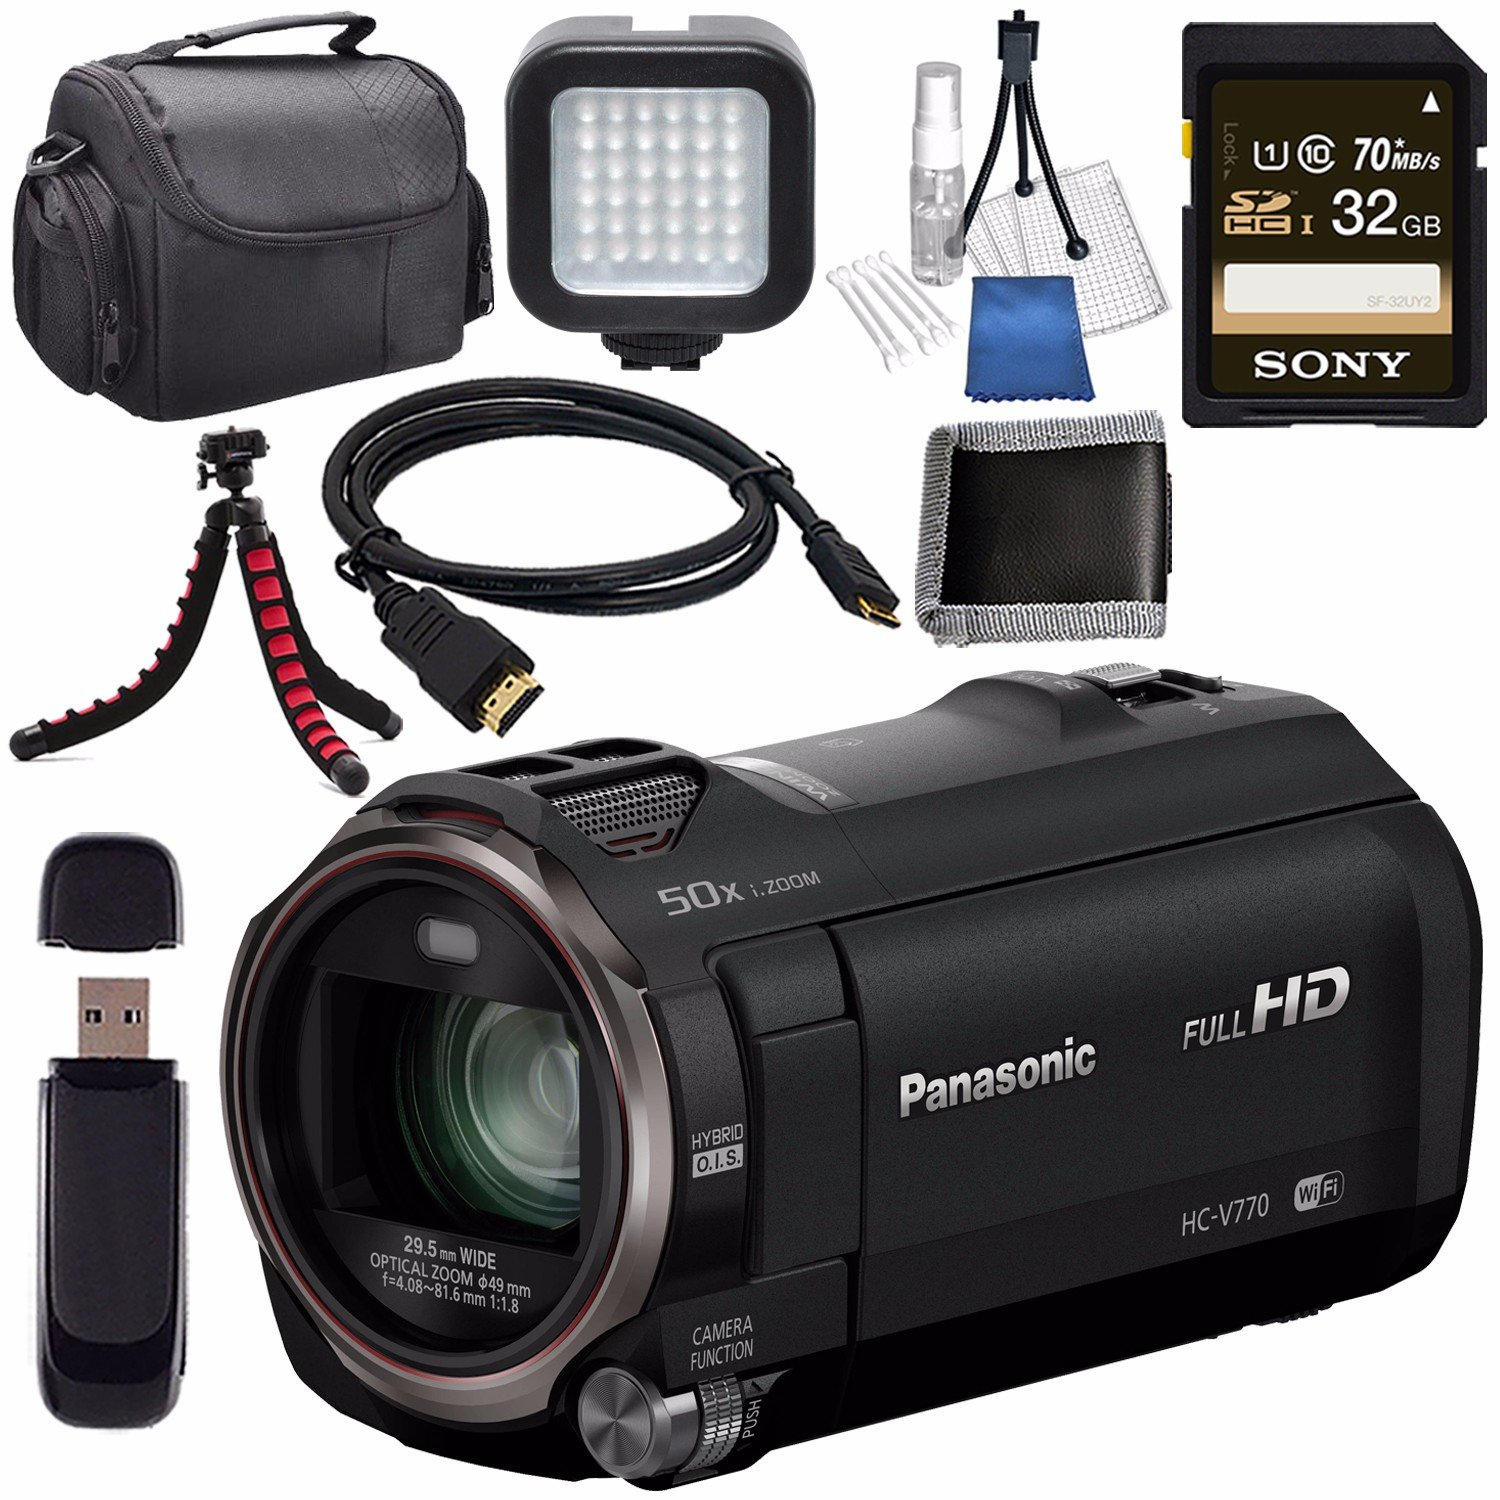 Panasonic HC-V770 HC-V770K Full HD Camcorder + Sony 32GB SDHC Card + Lens Cleaning Kit + Flexible Tripod + Carrying Case + Memory Card Wallet + Card Reader + Mini HDMI Cable + LED Light Bundle by Panasonic